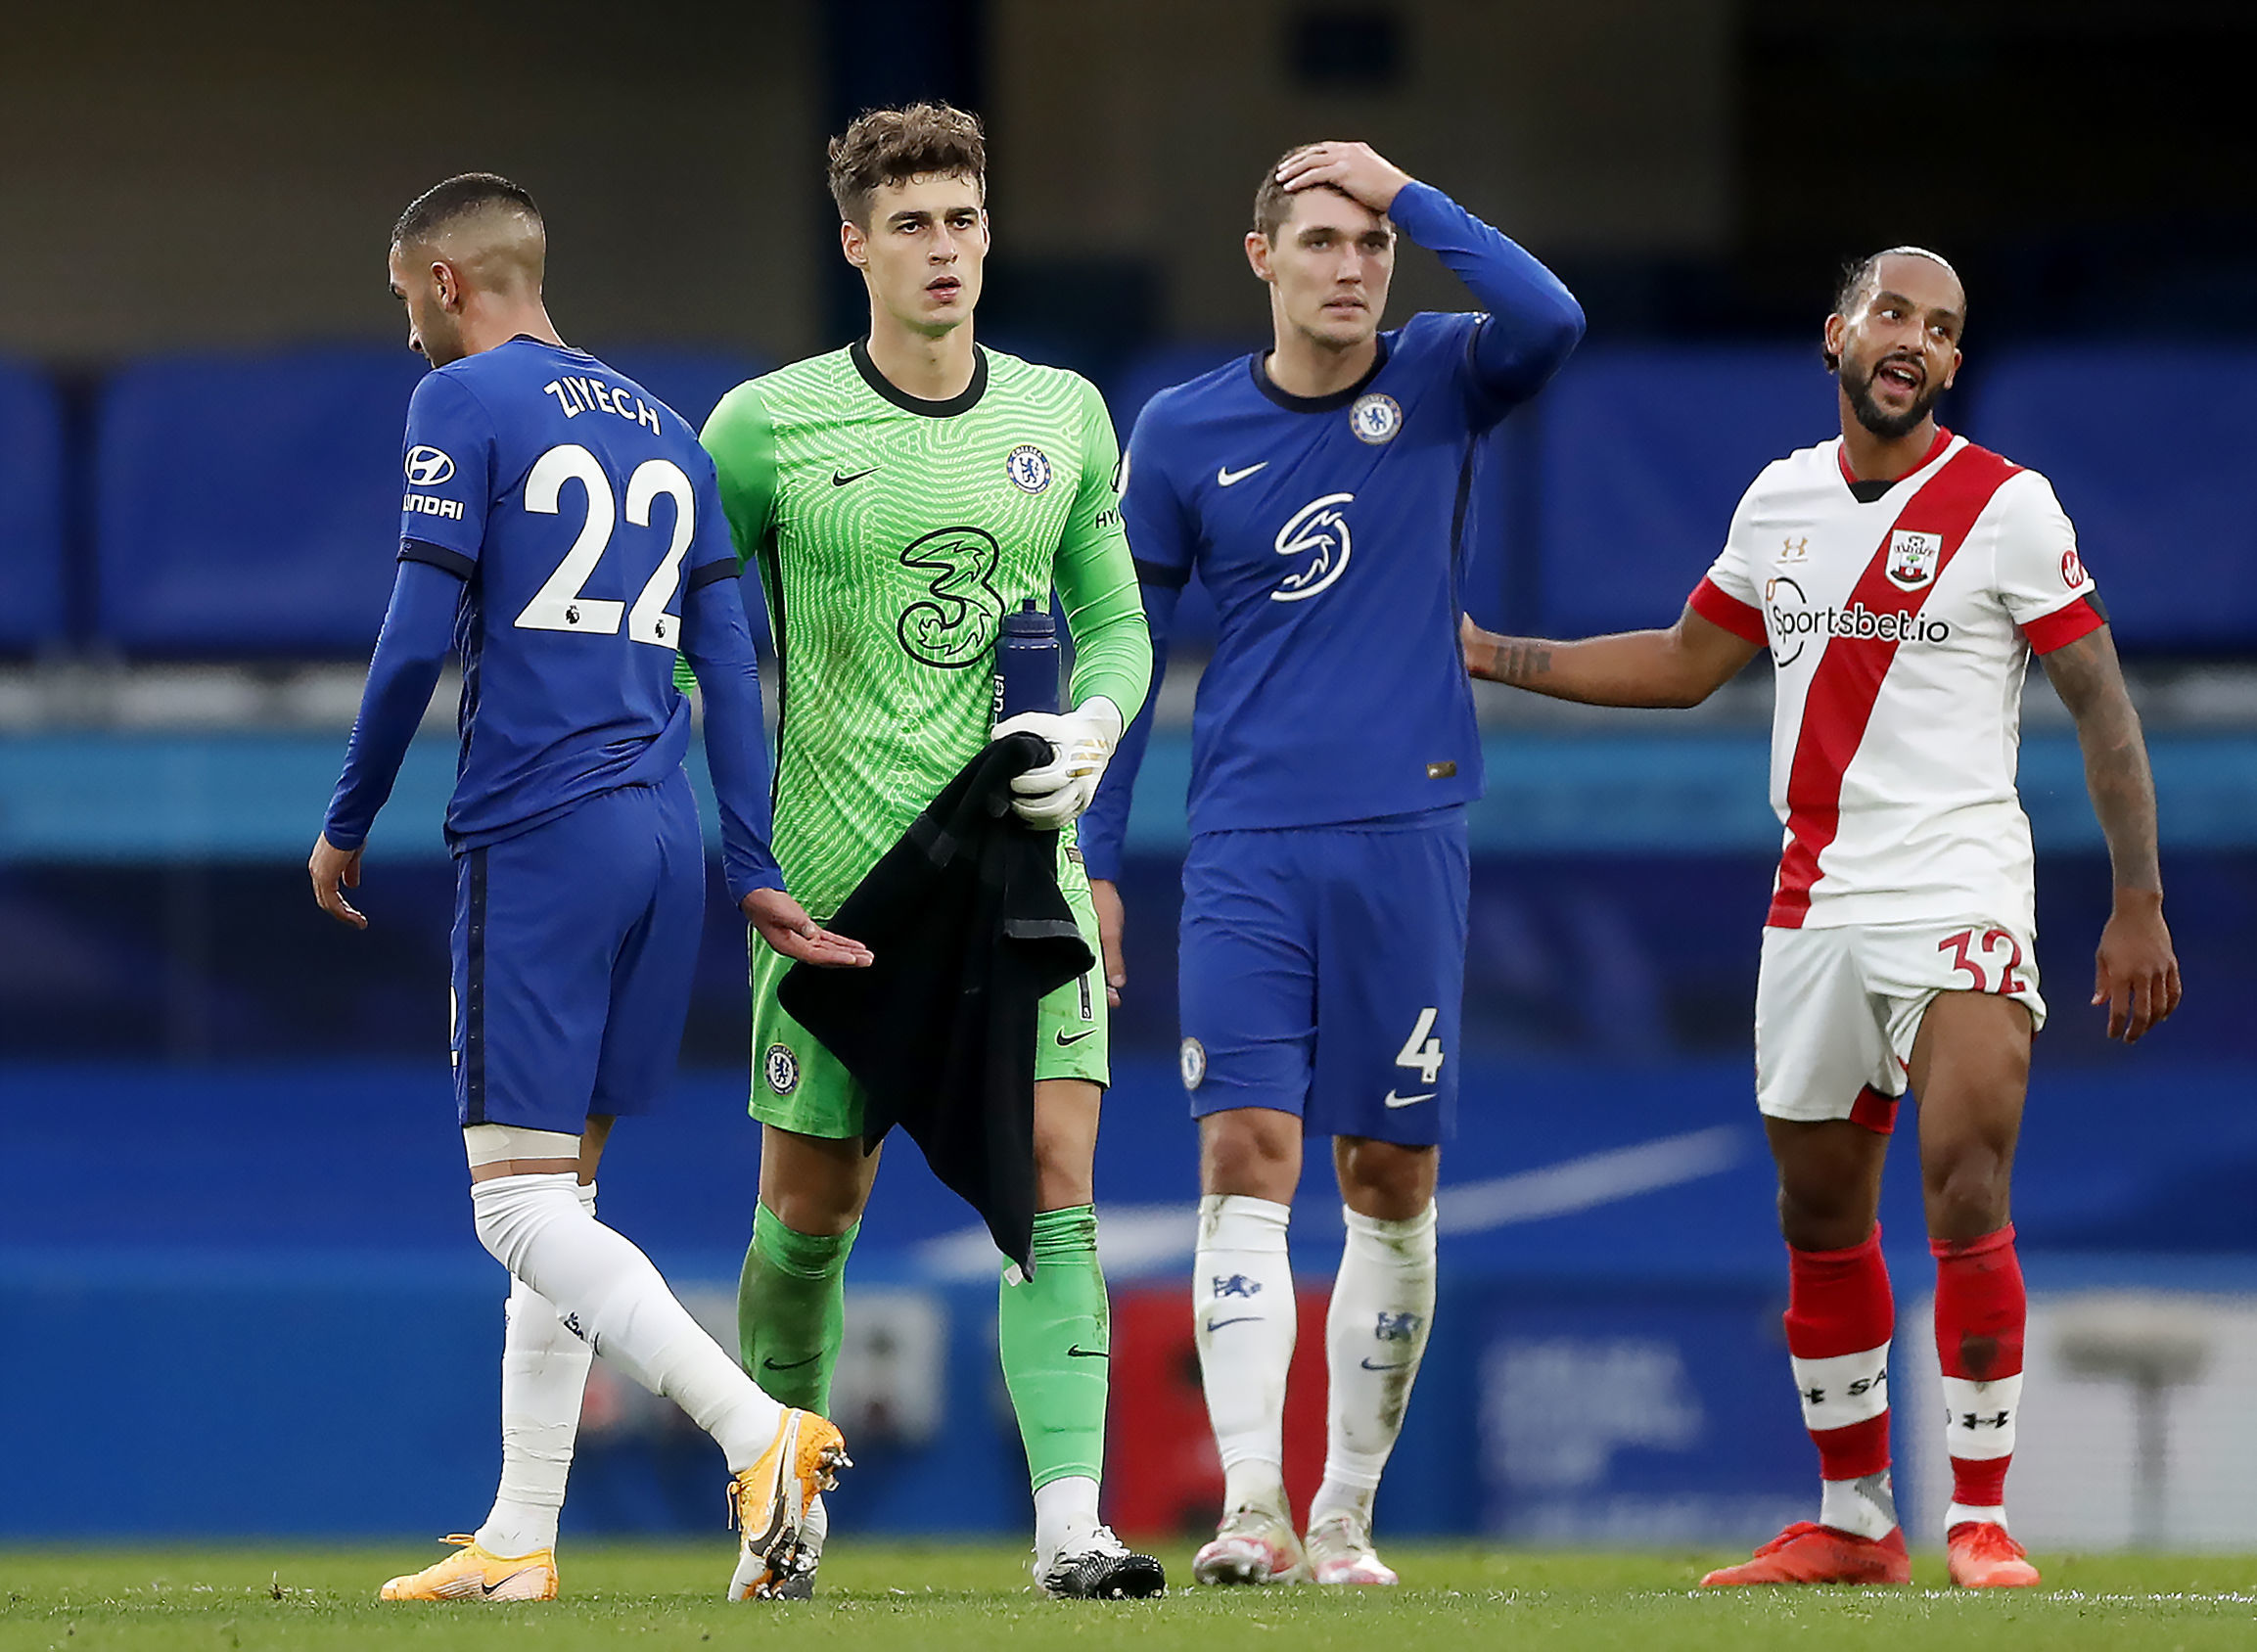 Timo Werner stars but Frank Lampard must tighten Chelsea's dodgy defence or face Roman Abramovich's wrath